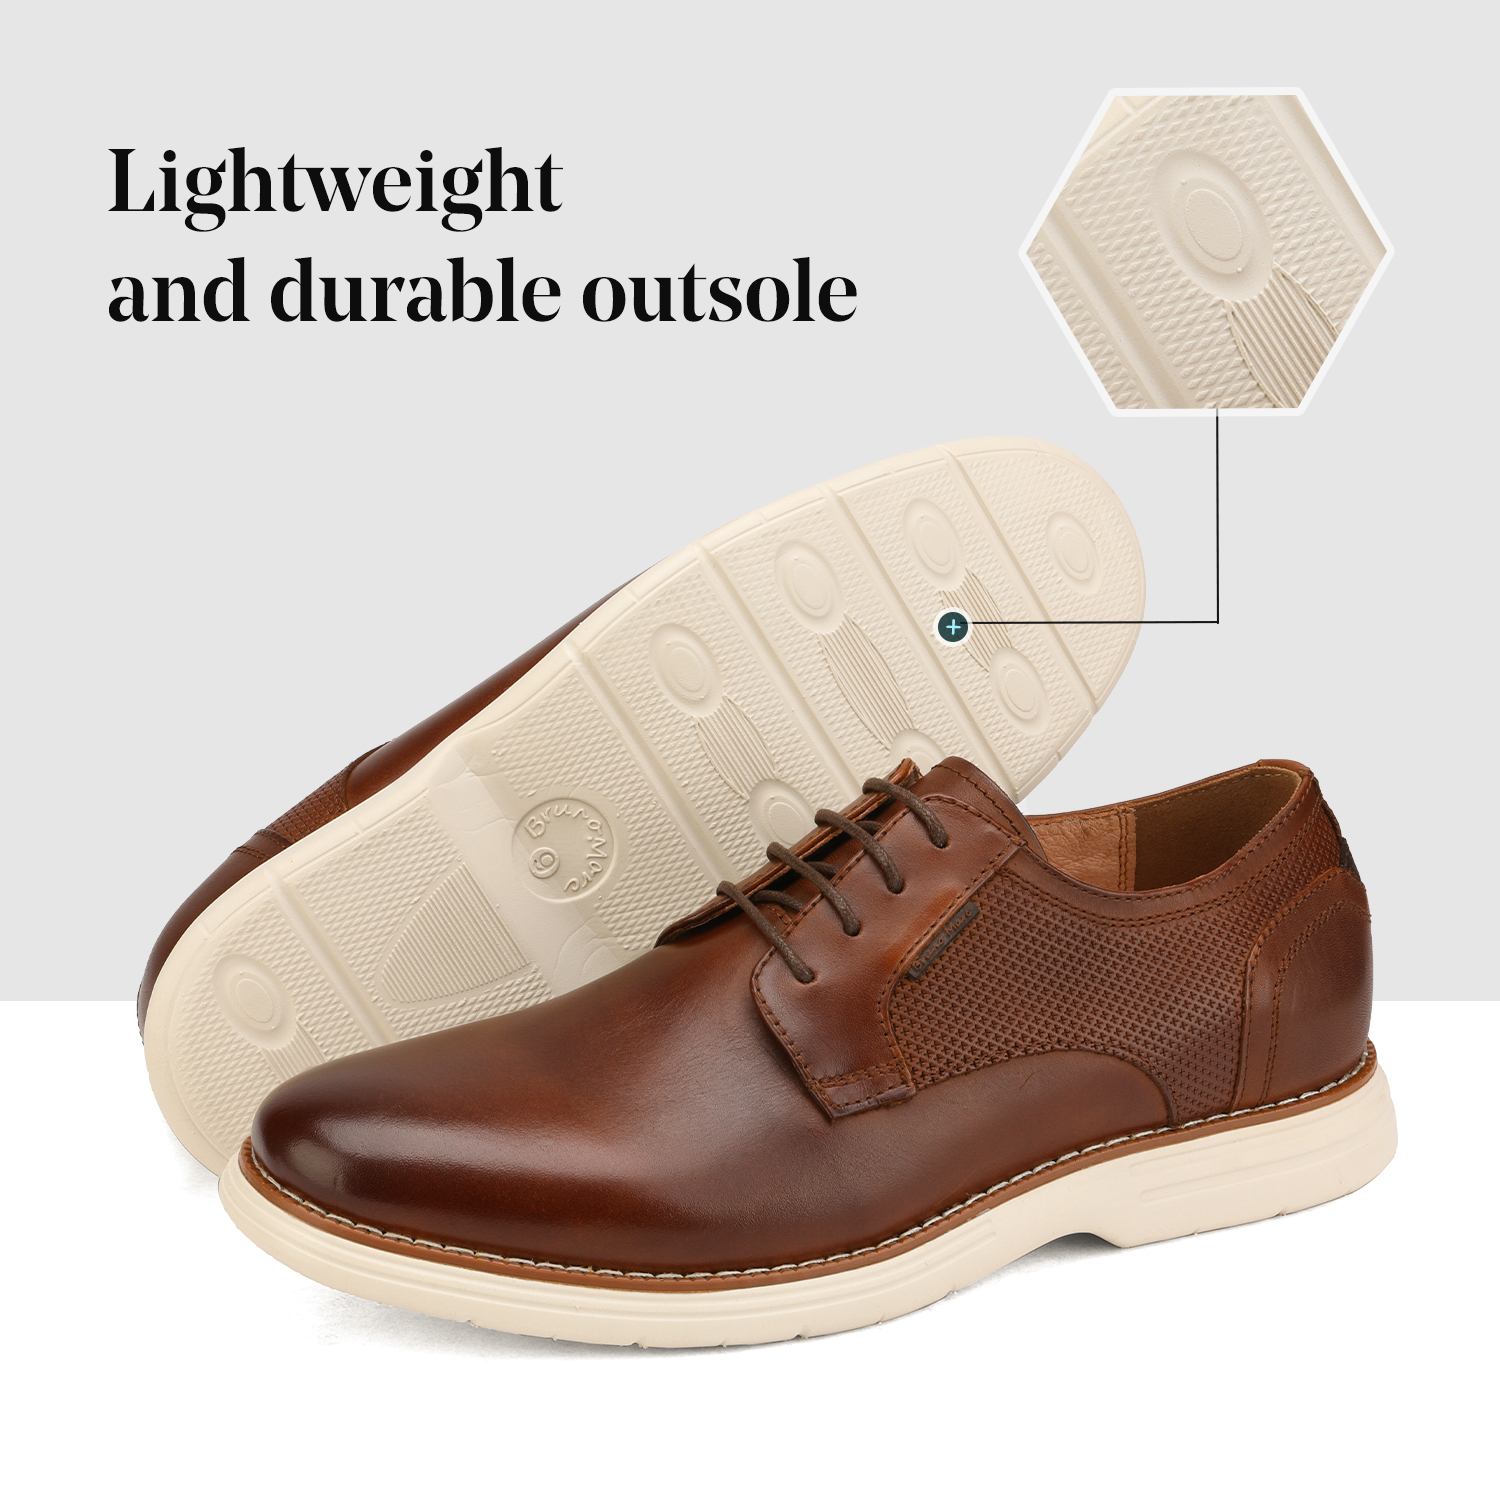 Mens-Fashion-Genuine-Leather-Business-Dress-Sneakers-Casual-Lace-up-Oxford-Shoe thumbnail 20